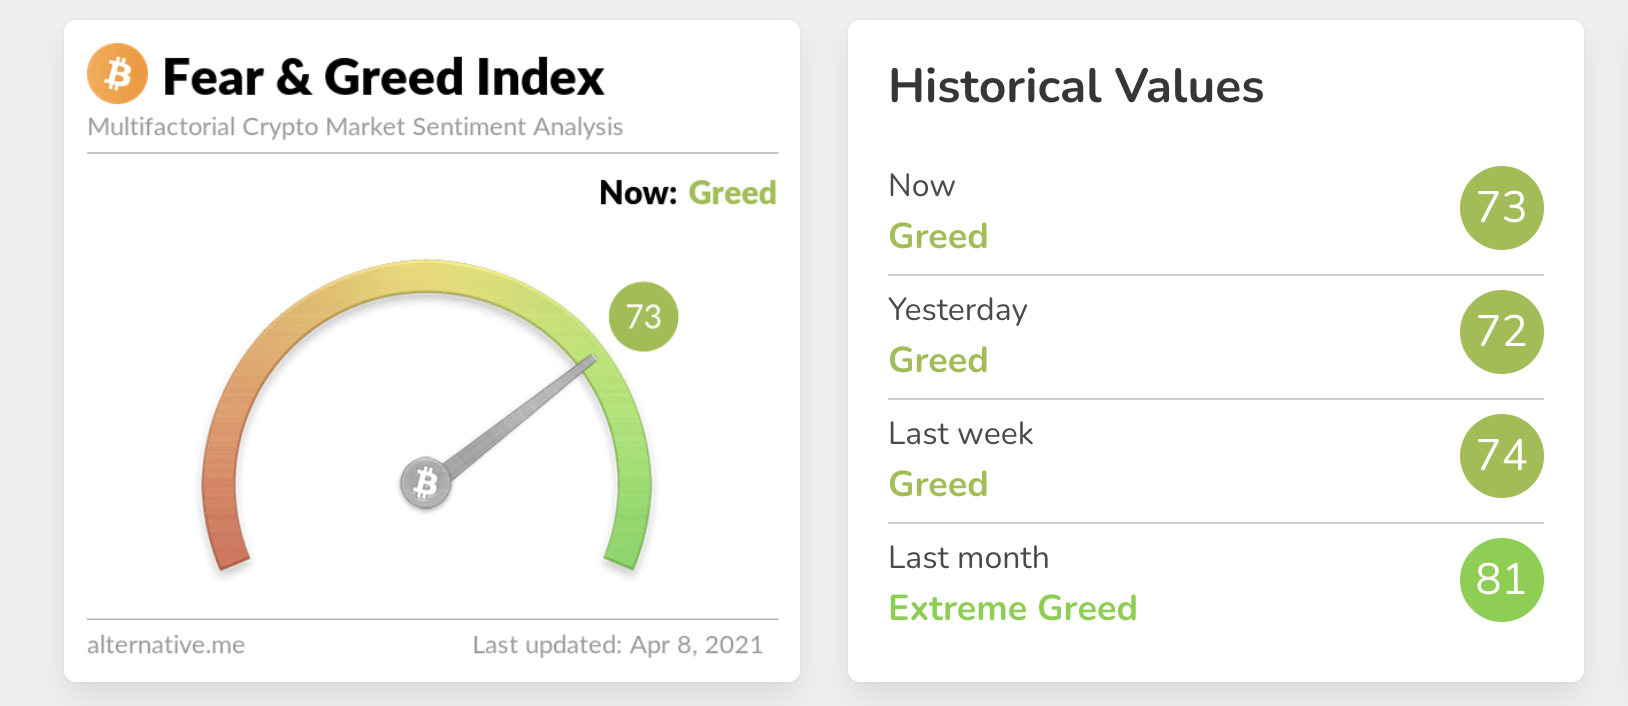 Fear & Greed Index - April 7